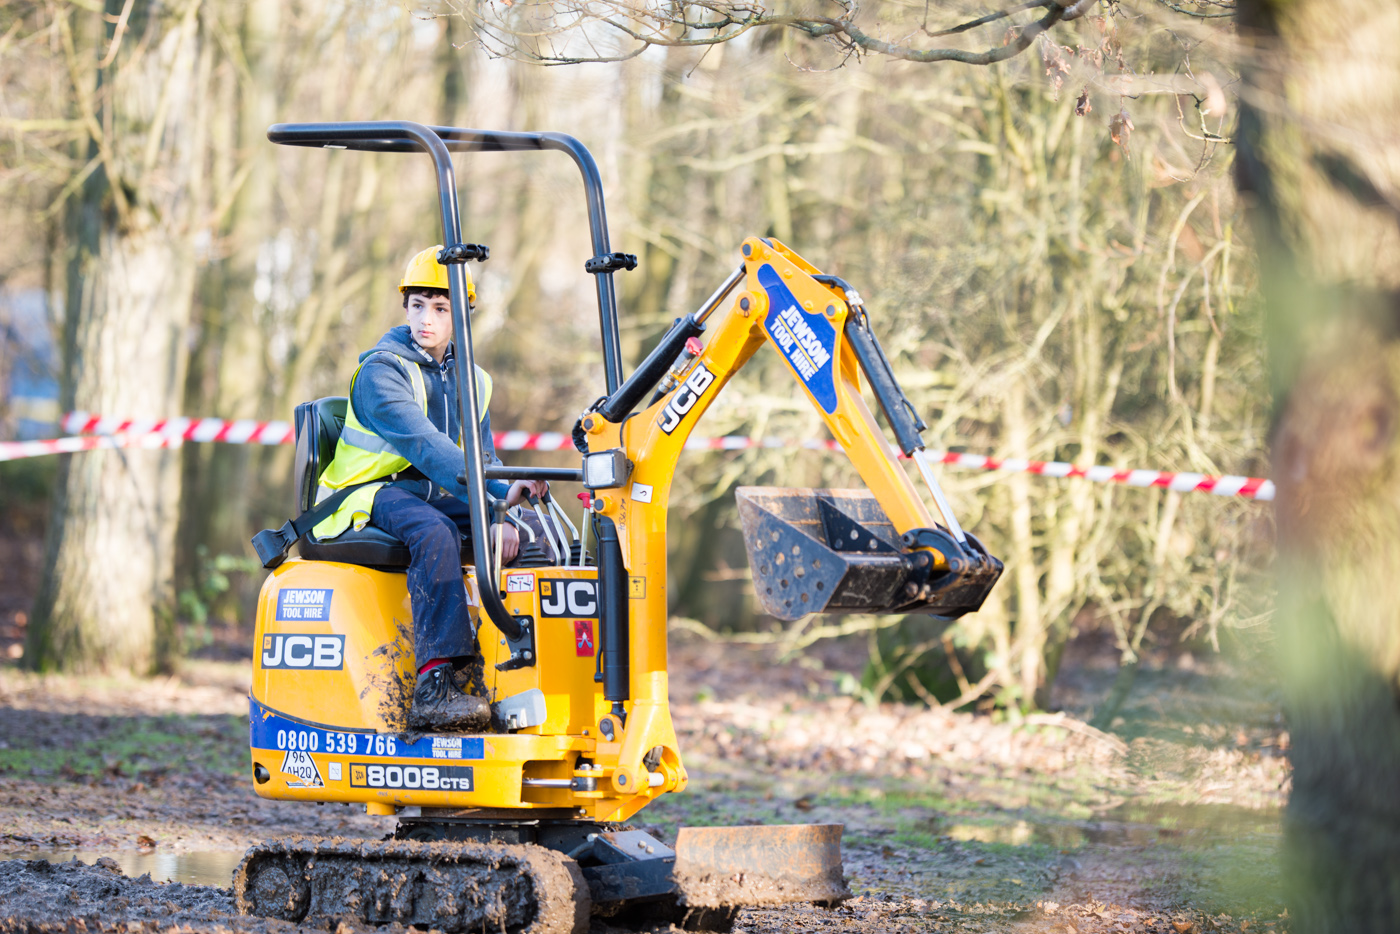 Digger driving appealed to the 5-year-old inside everyone!